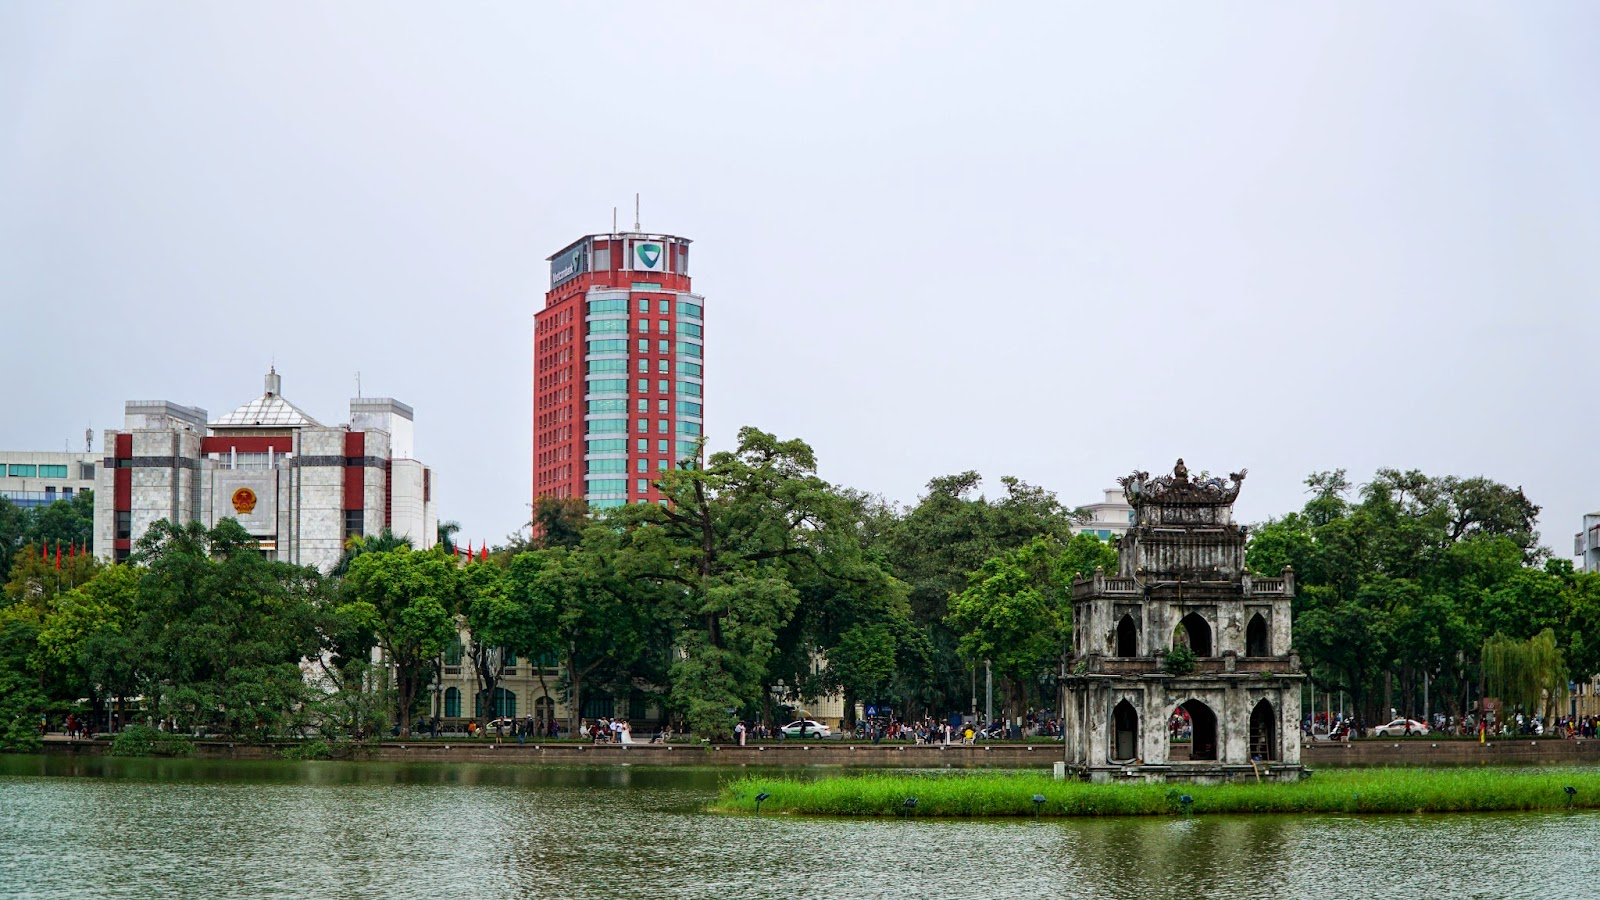 Thap Rua, one of Hanoi's more recognizable landmarks